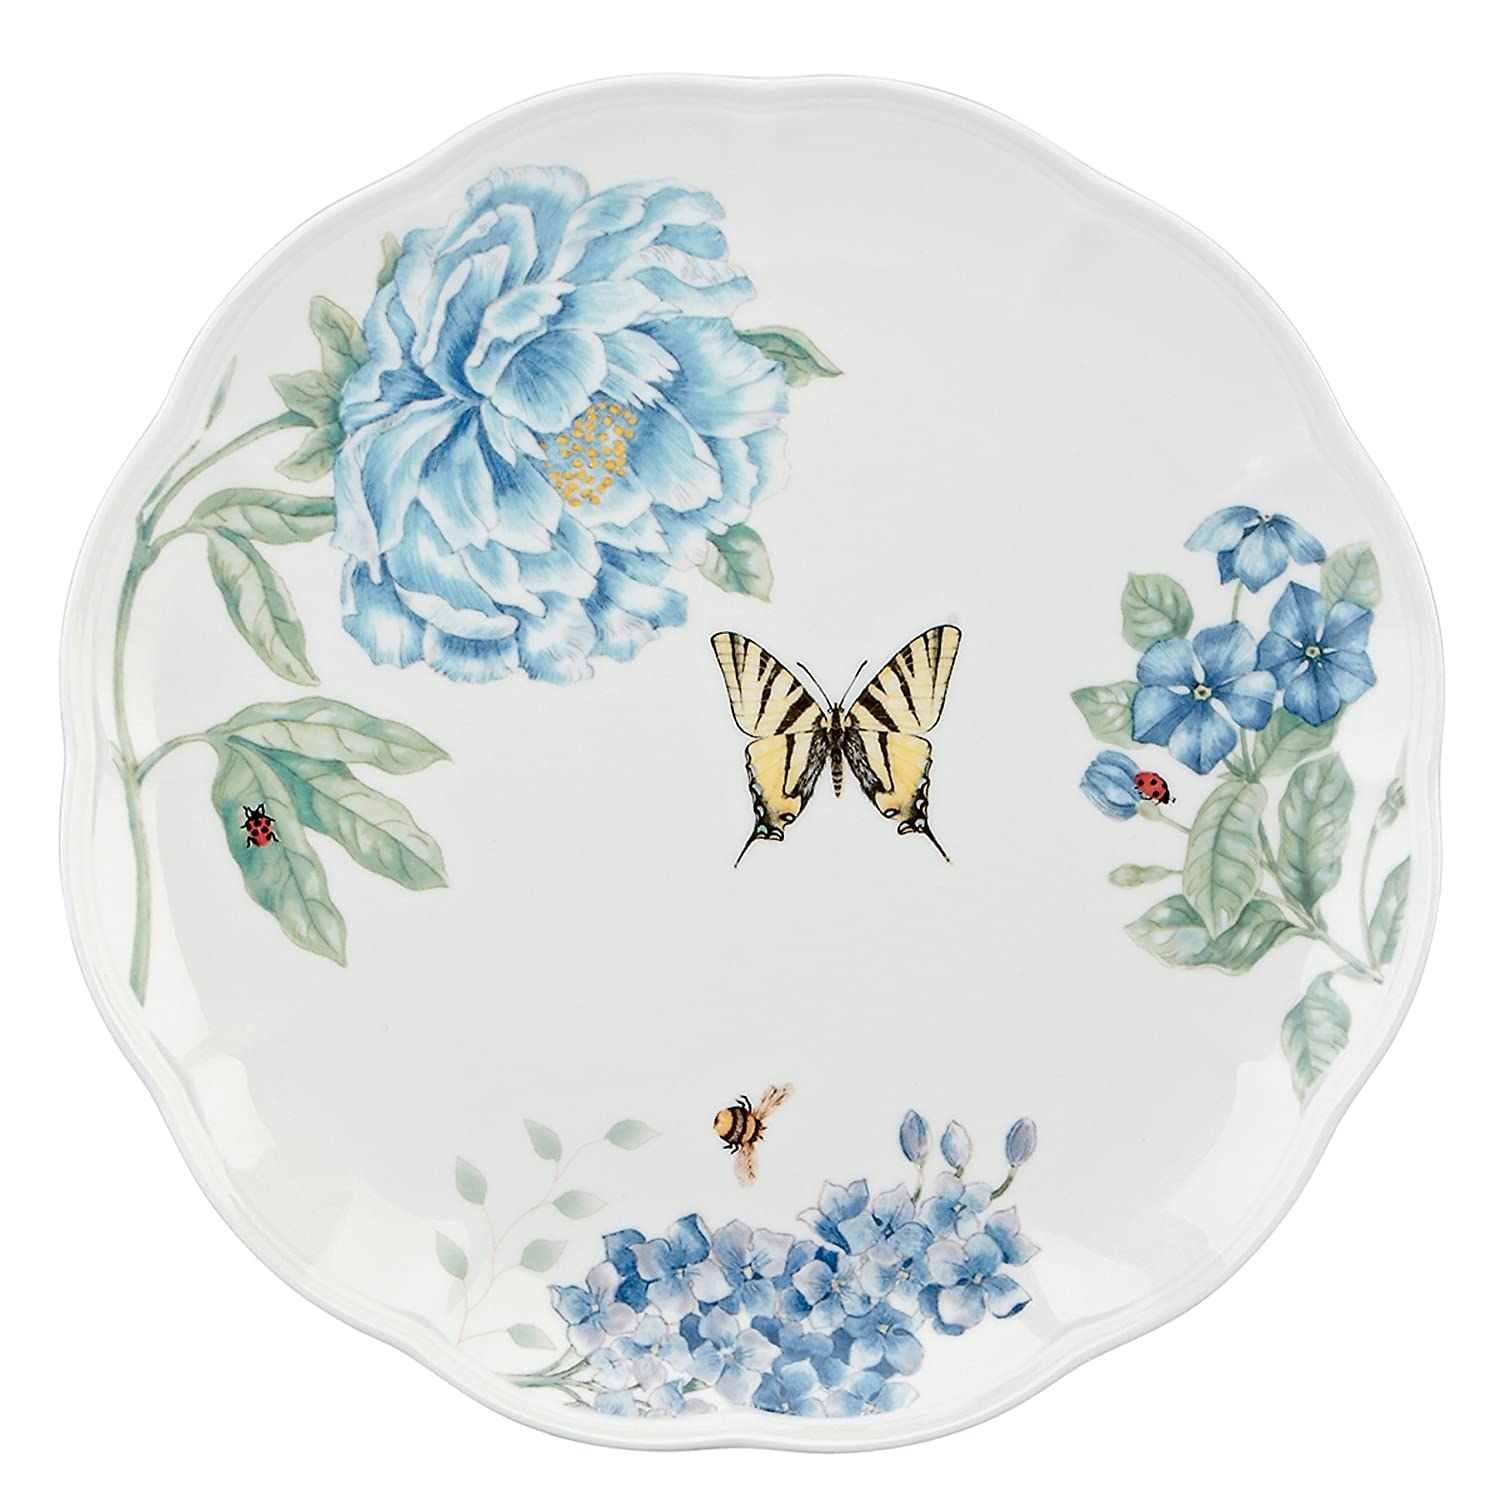 sc 1 st  Amazon.com & Amazon.com: Lenox Butterfly Meadow Blue Dinner Plate: Kitchen u0026 Dining